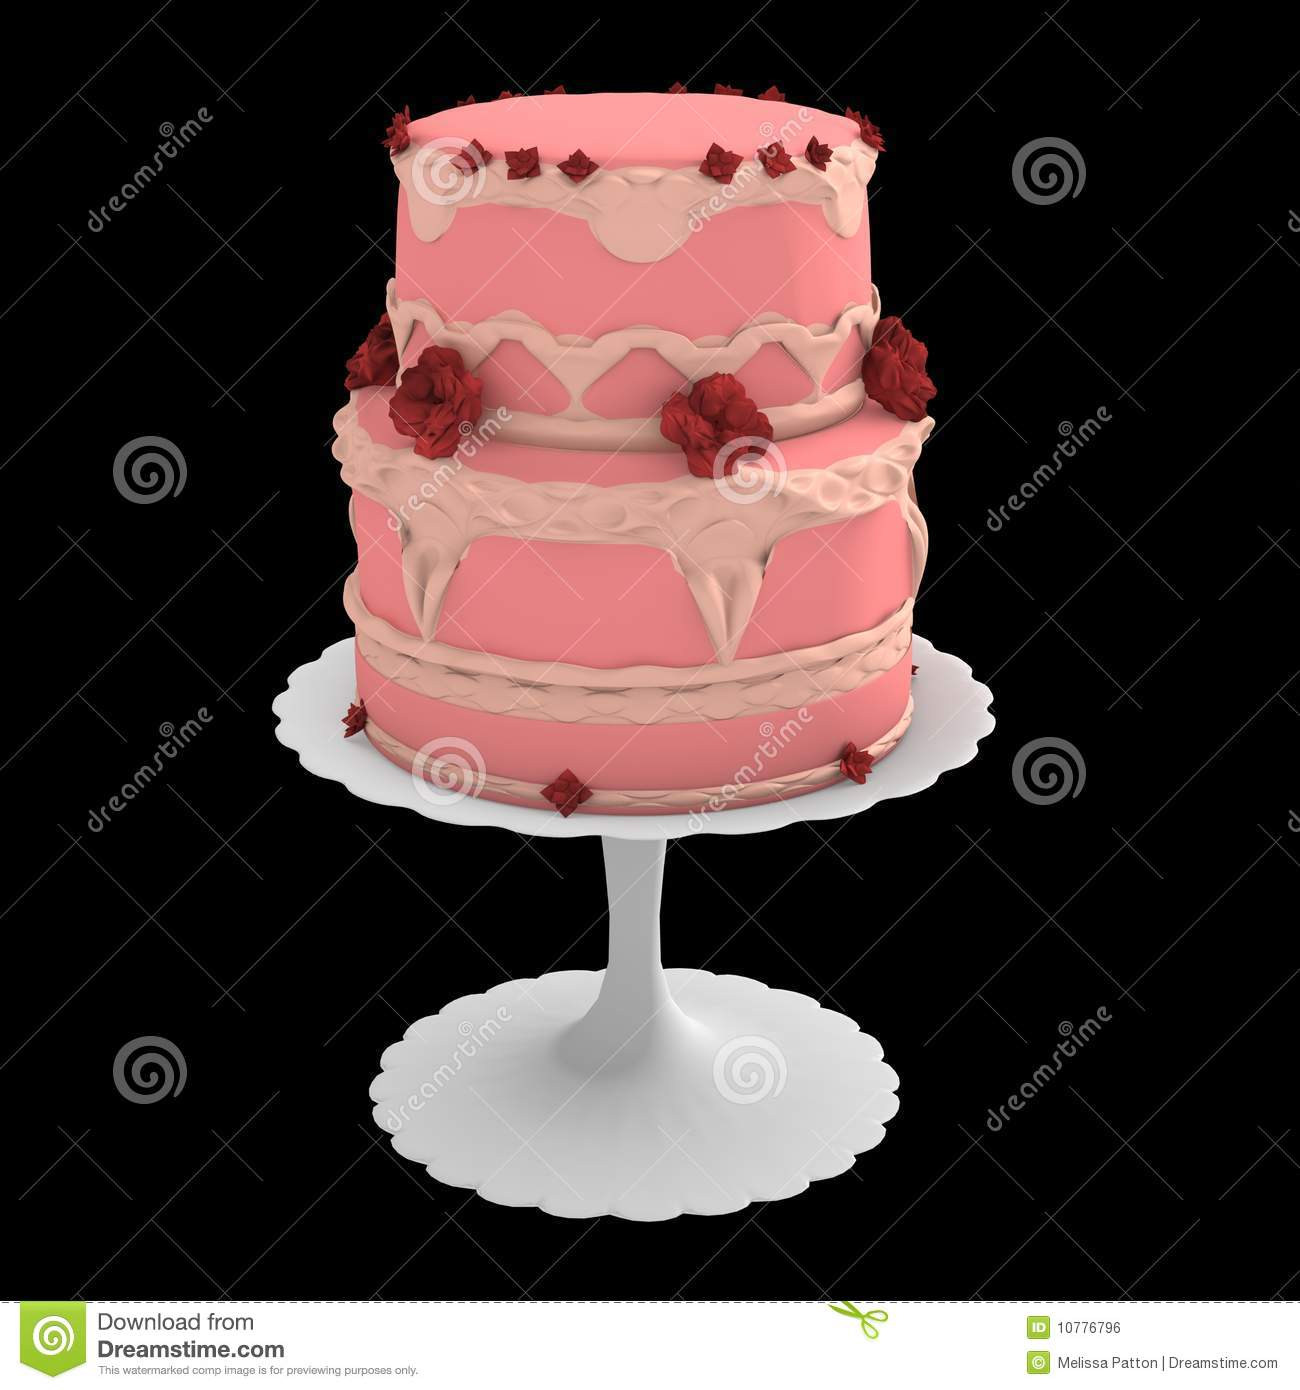 Miraculous Pink Two Layer Cake 3D Computer Generated Stock Illustration Funny Birthday Cards Online Amentibdeldamsfinfo